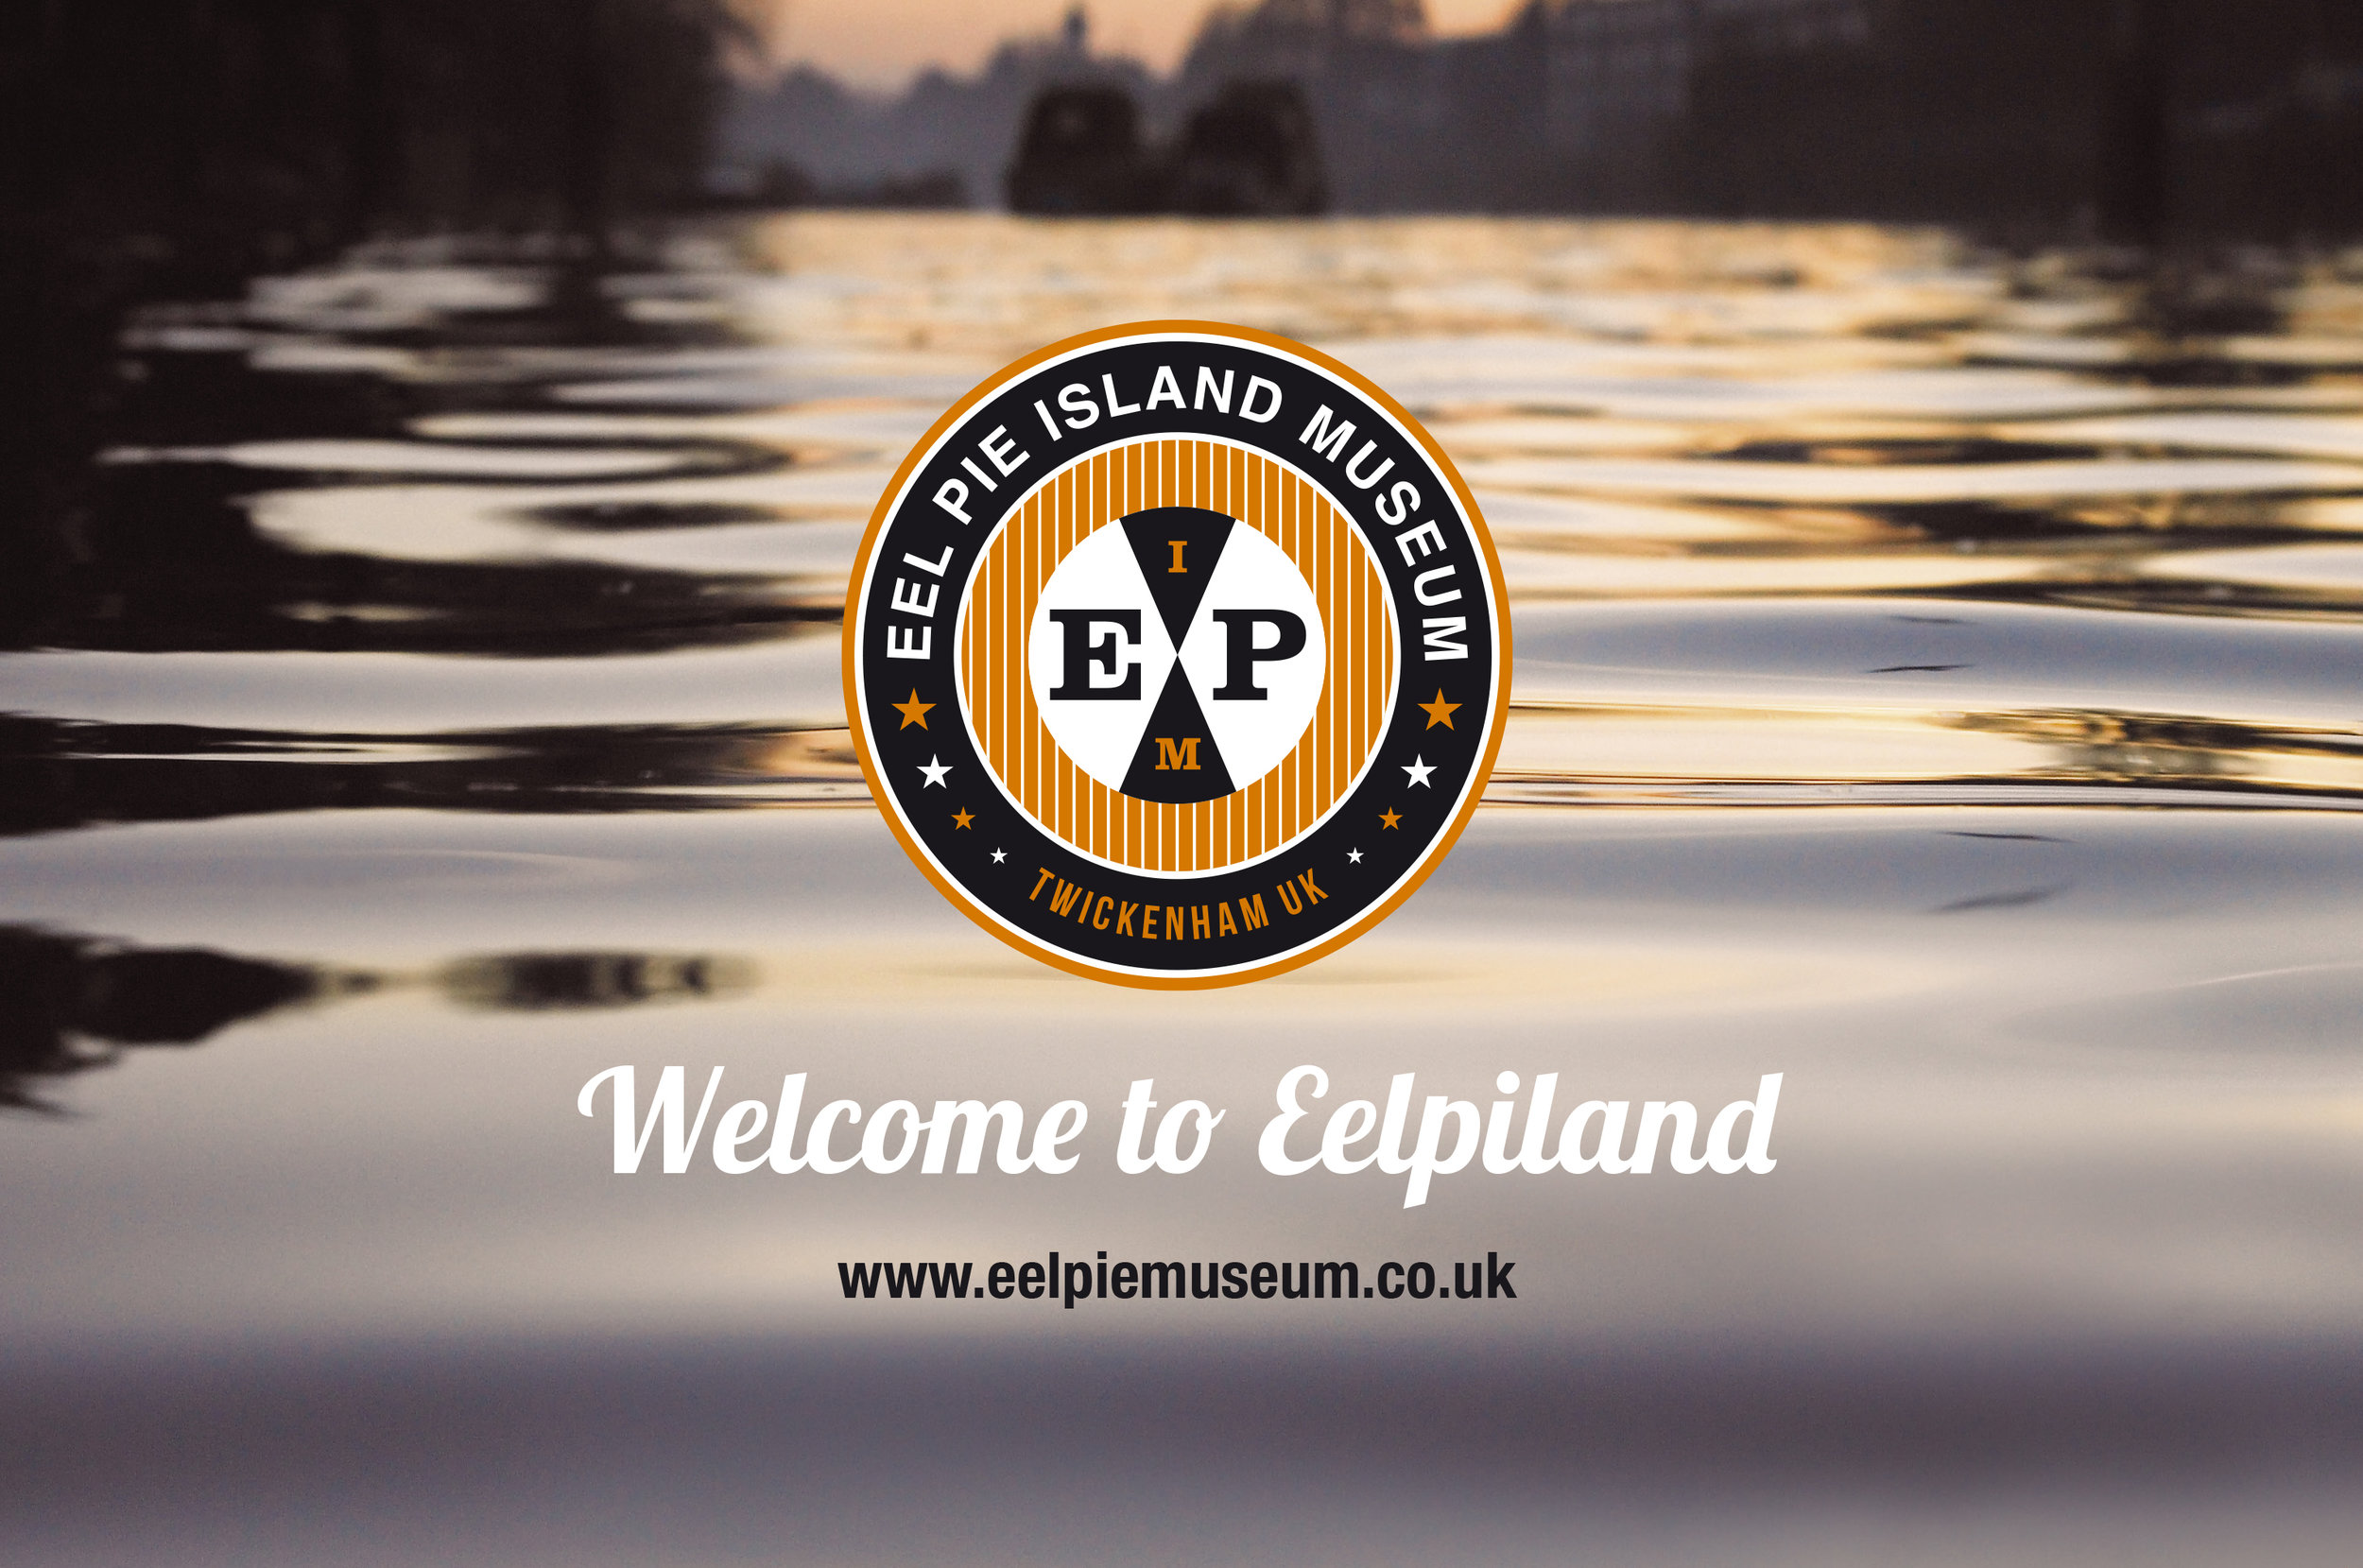 Eel pie island museum - A place that time has now not forgotten, a time capsule that defines a